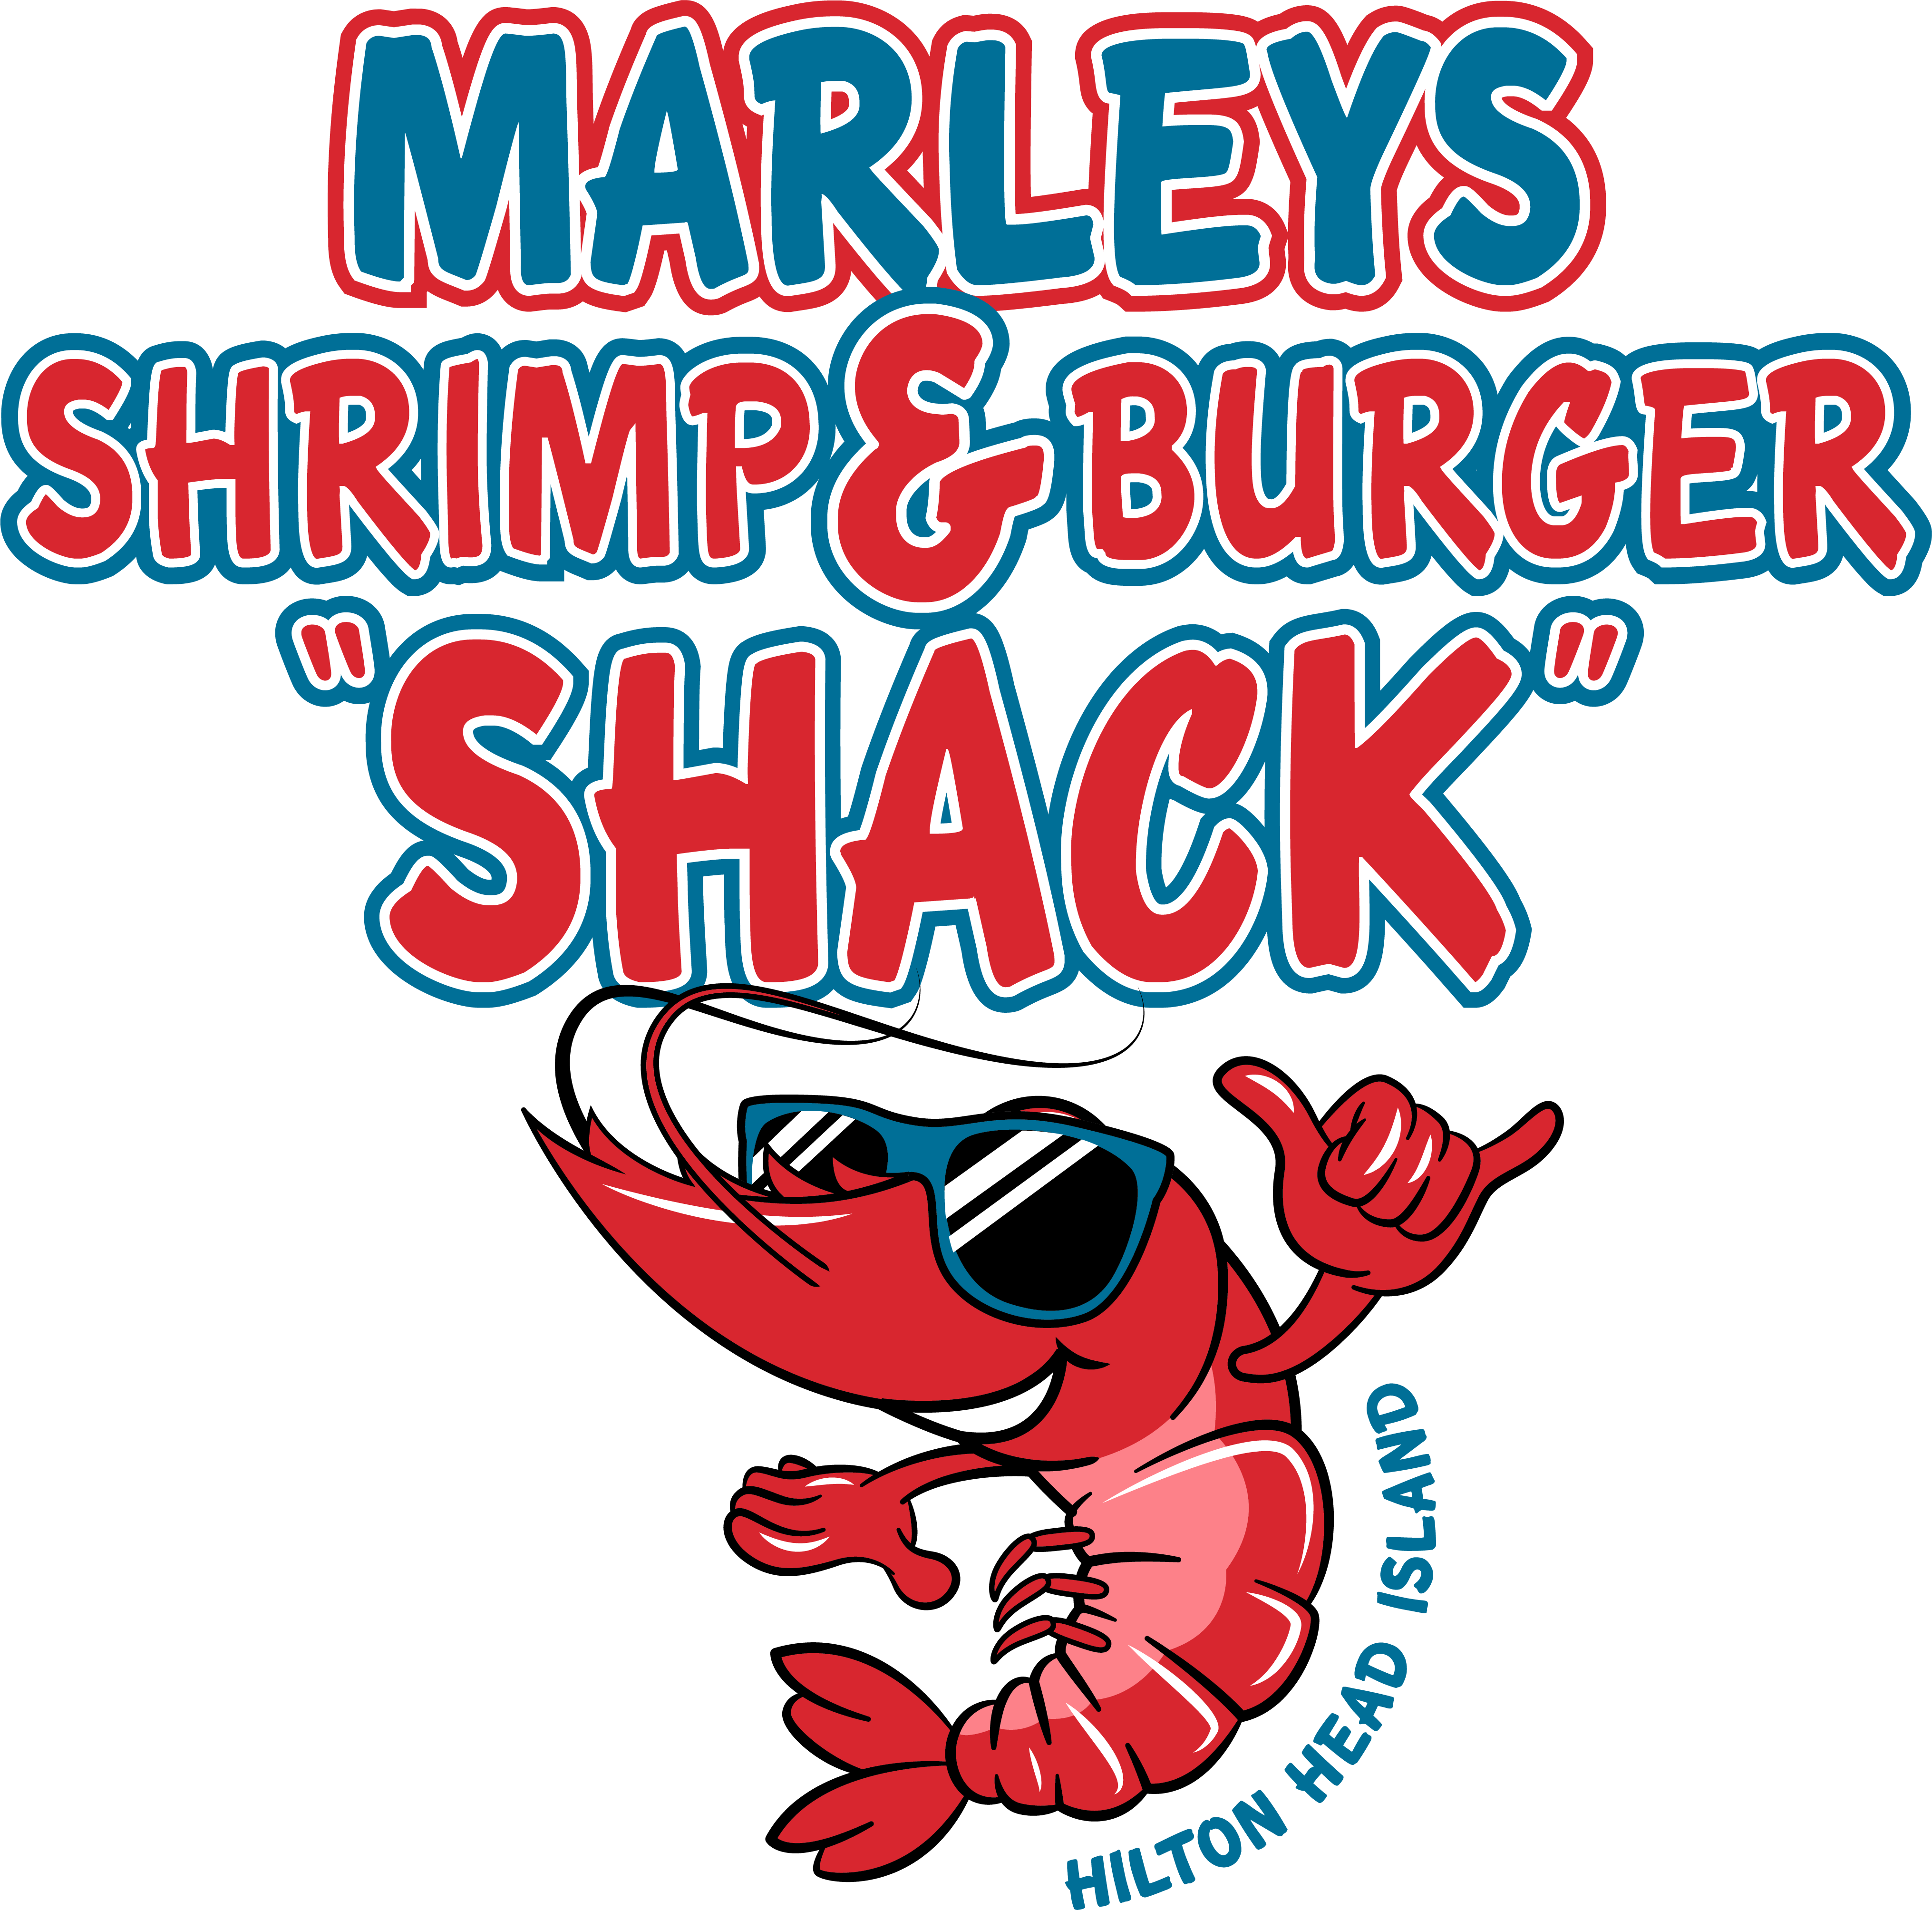 Marleys shrimp and burger shack